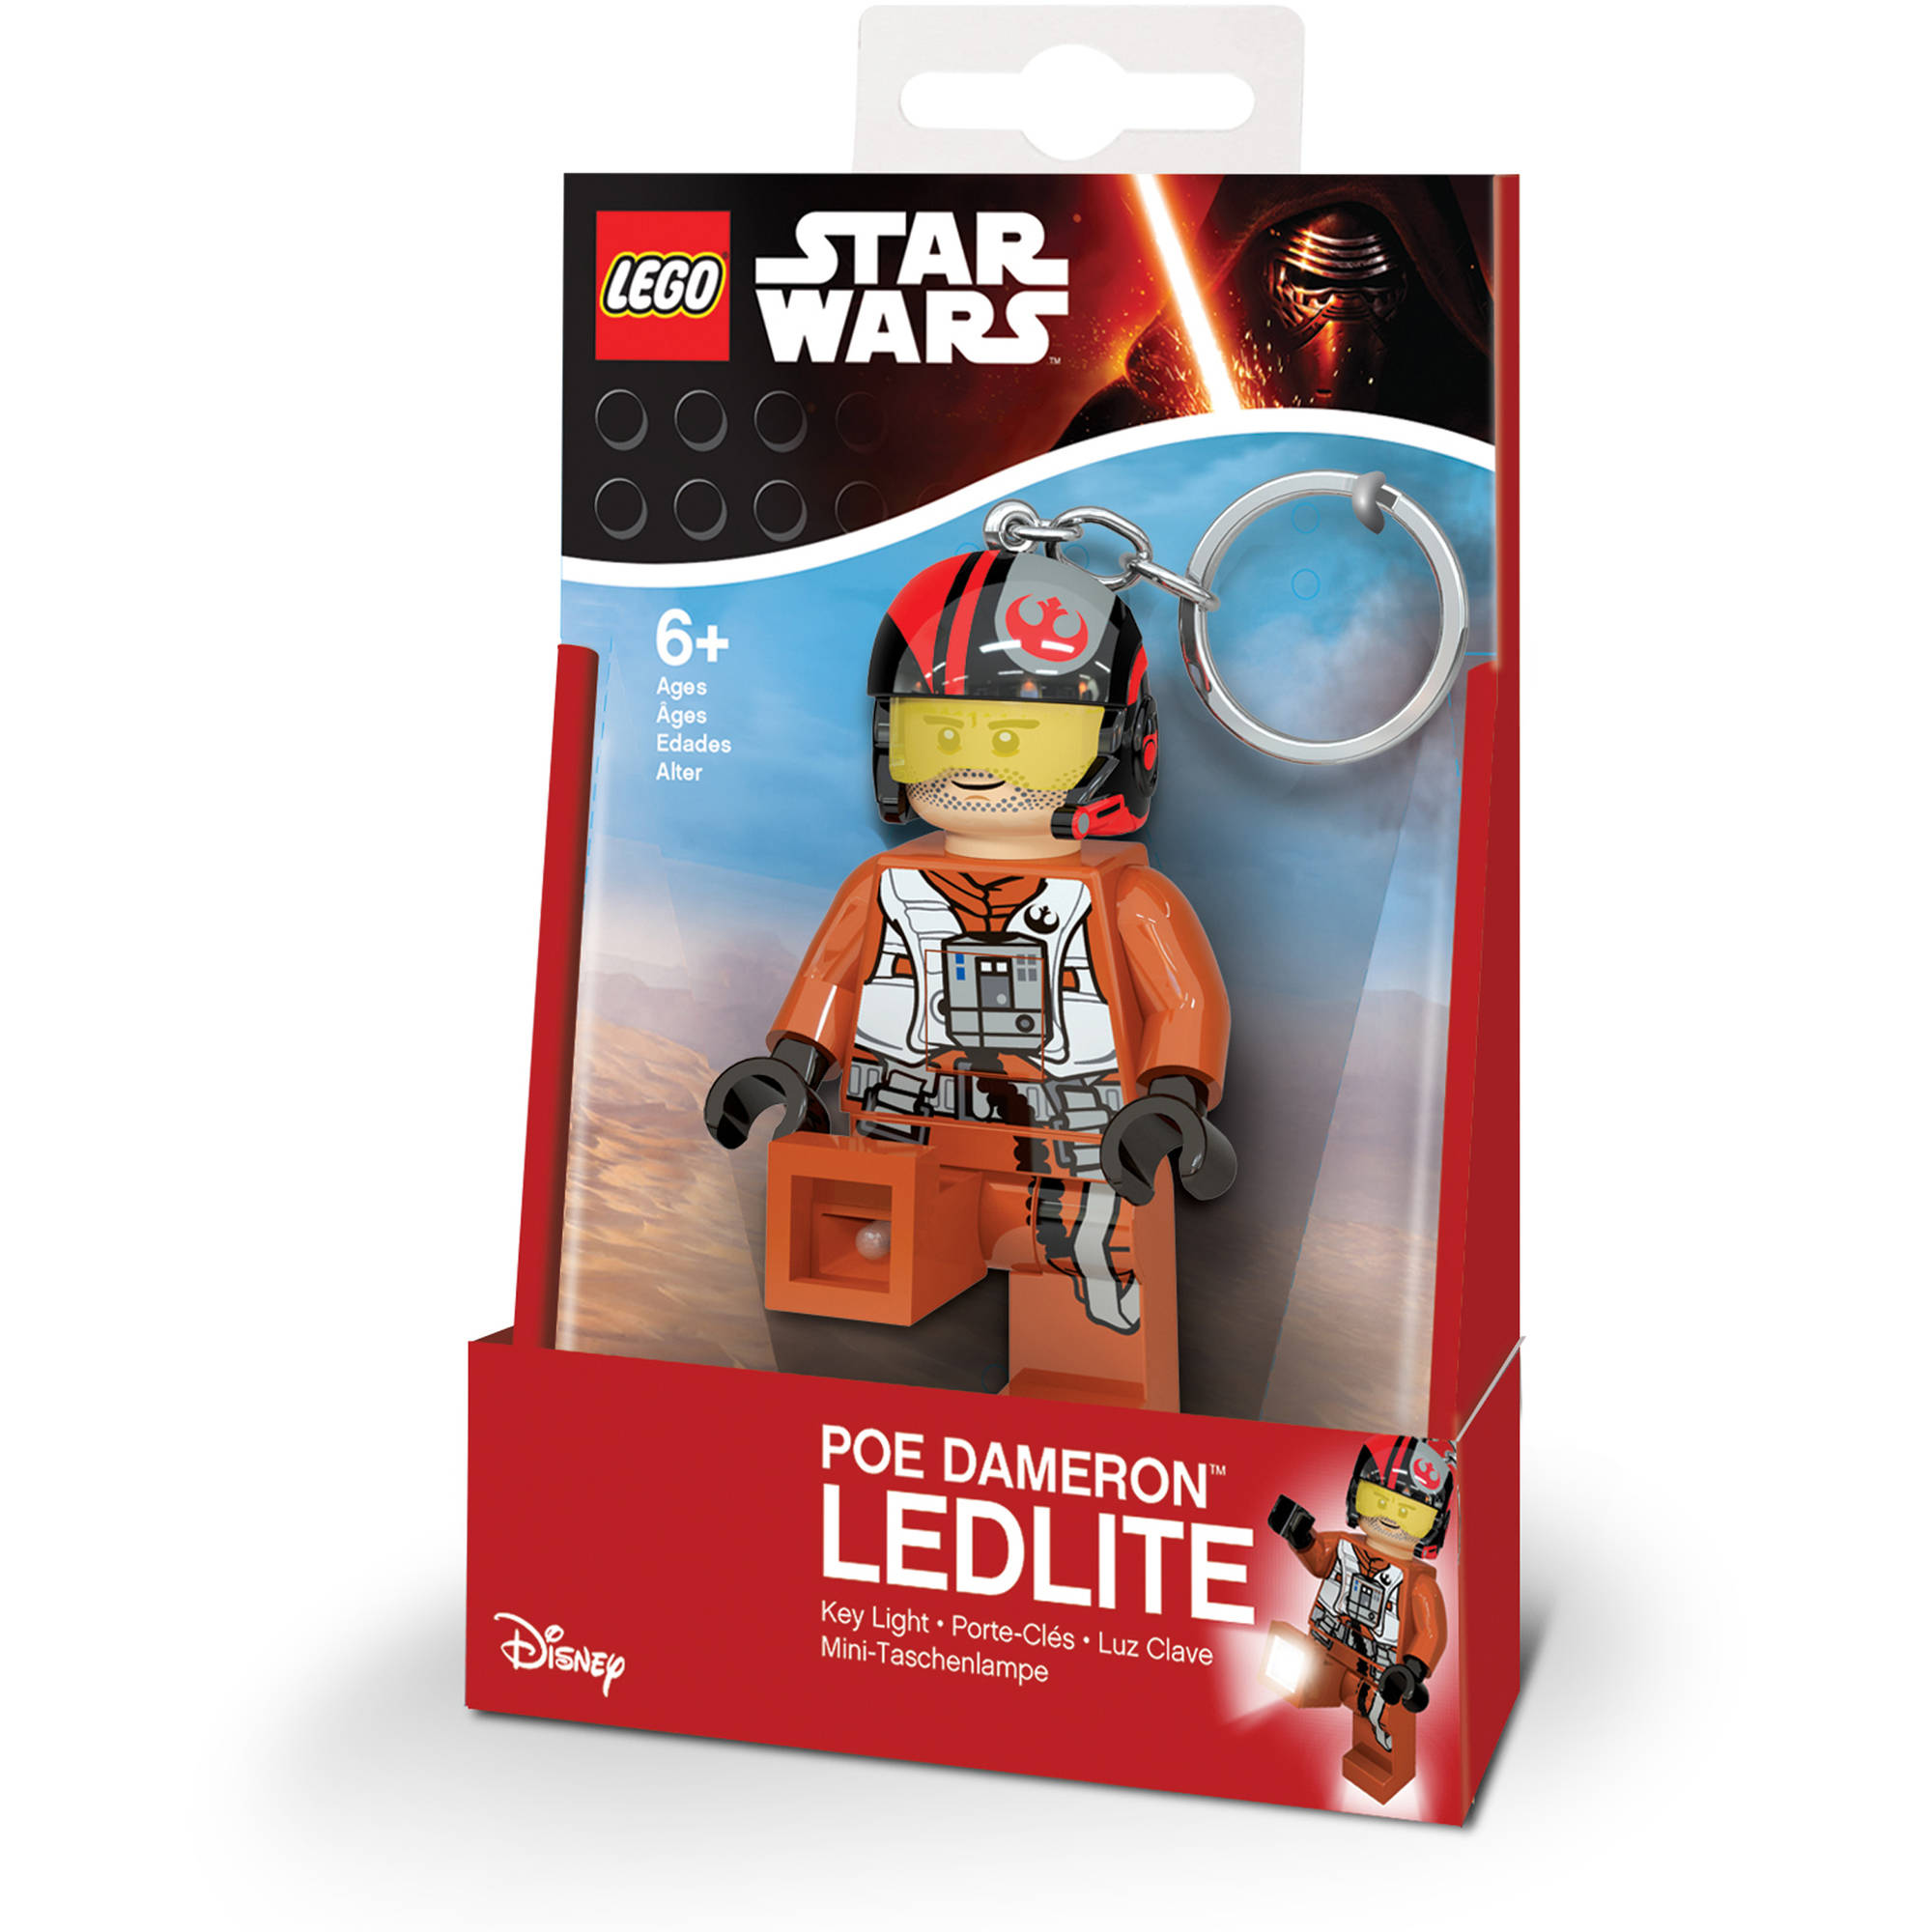 LEGO Star Wars Poe Dameron Key Light, Batteries Included